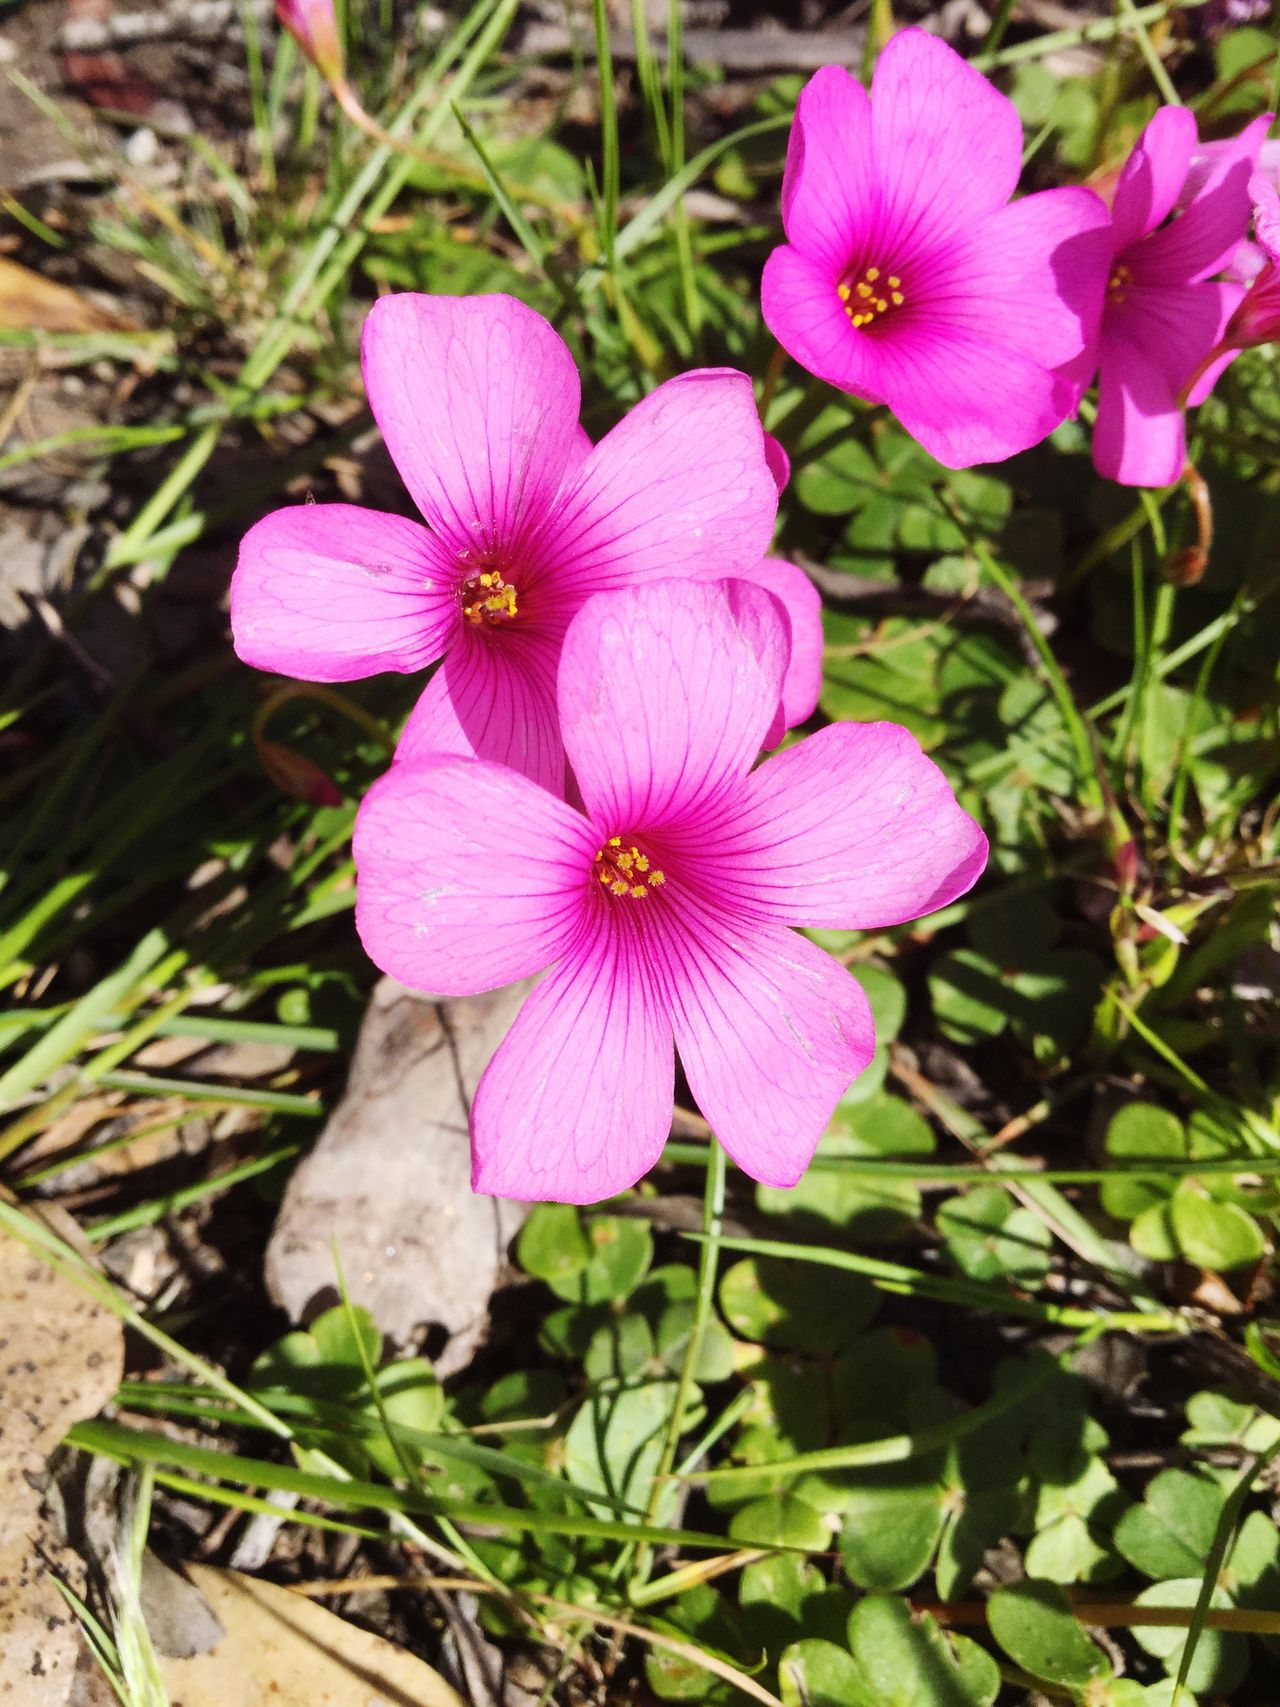 Flower Fragility Petal Flower Head Pink Outdoors Freshness Beauty In Nature Taking Pictures Capture The Moment Check This Out Sunday No People Blooming